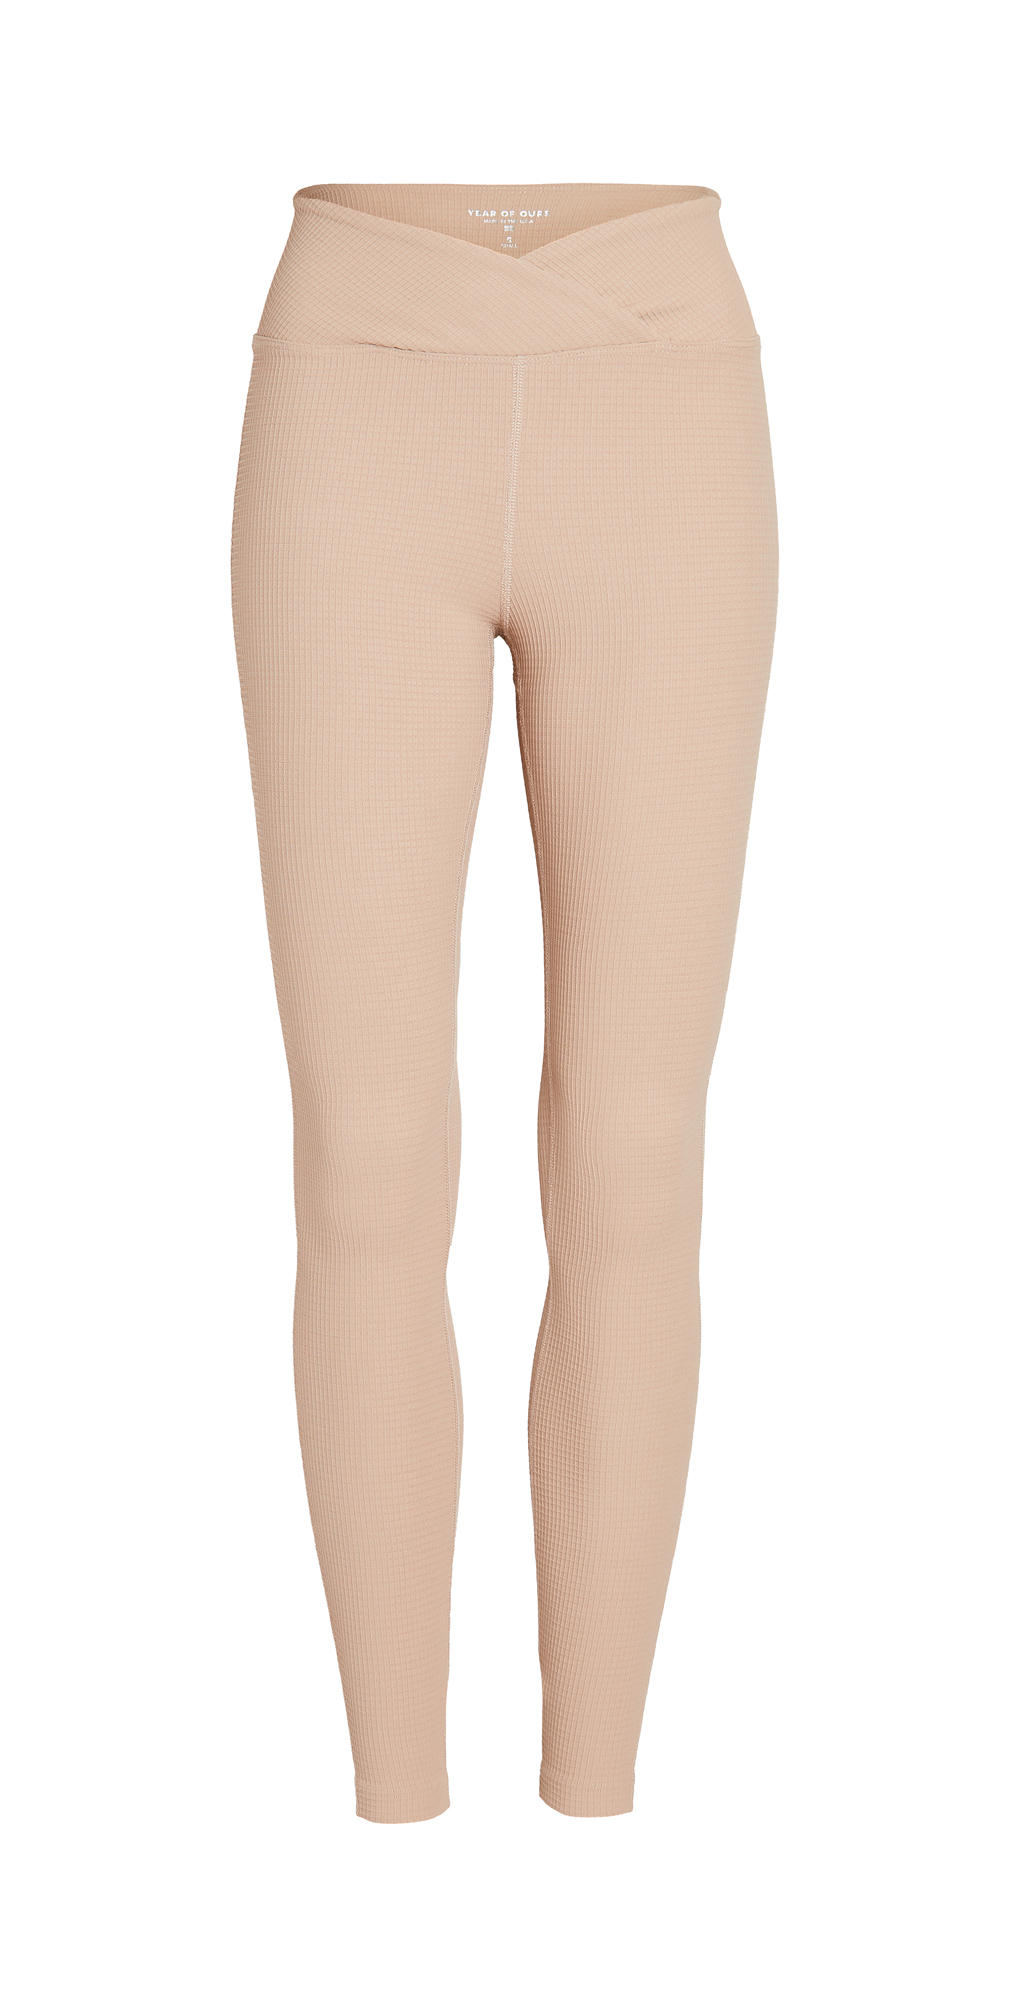 Year of Ours Thermal Veronica Leggings